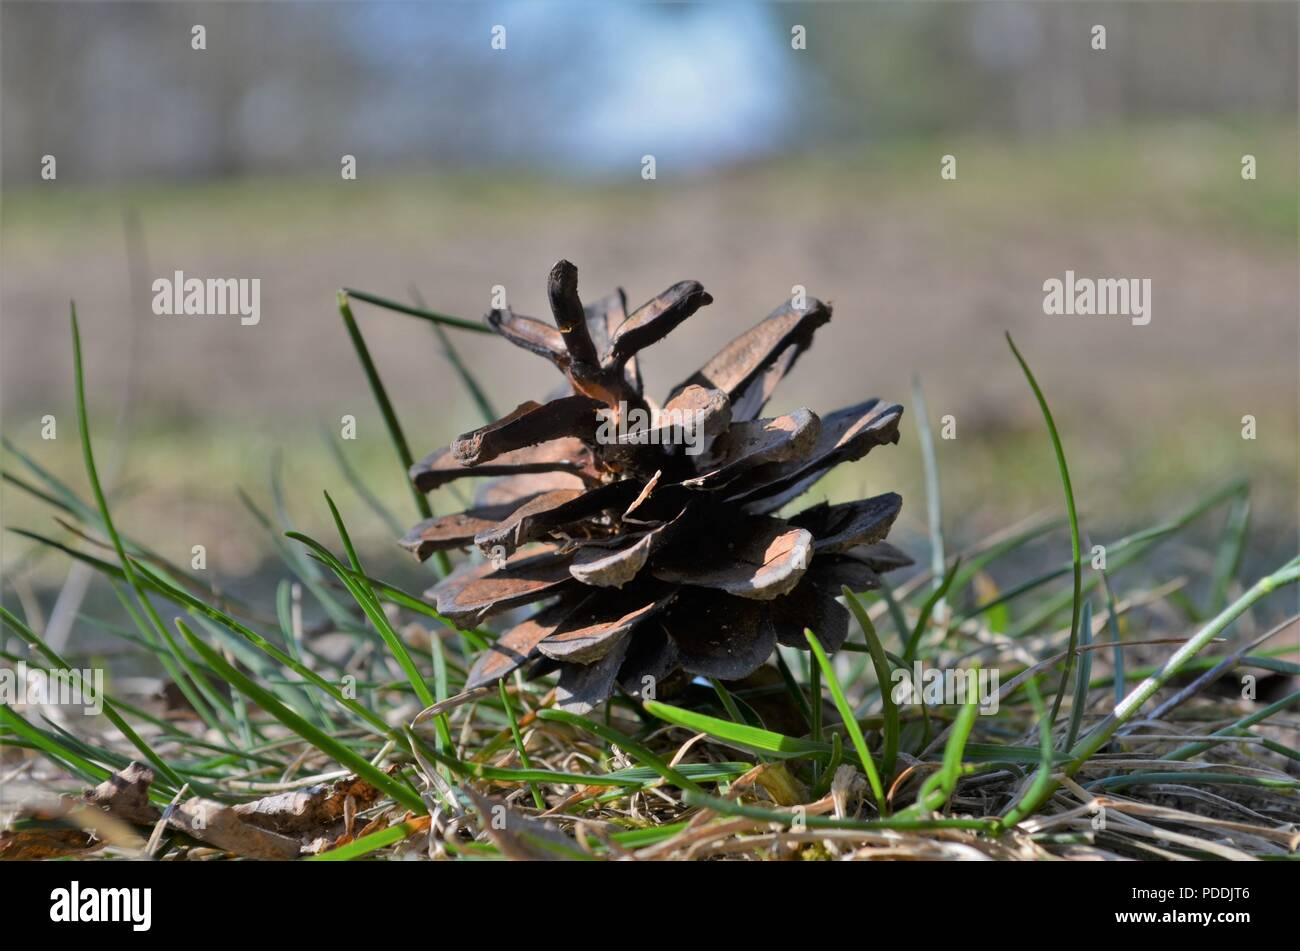 conifer cone between grass on the ground in a German forest - Stock Image